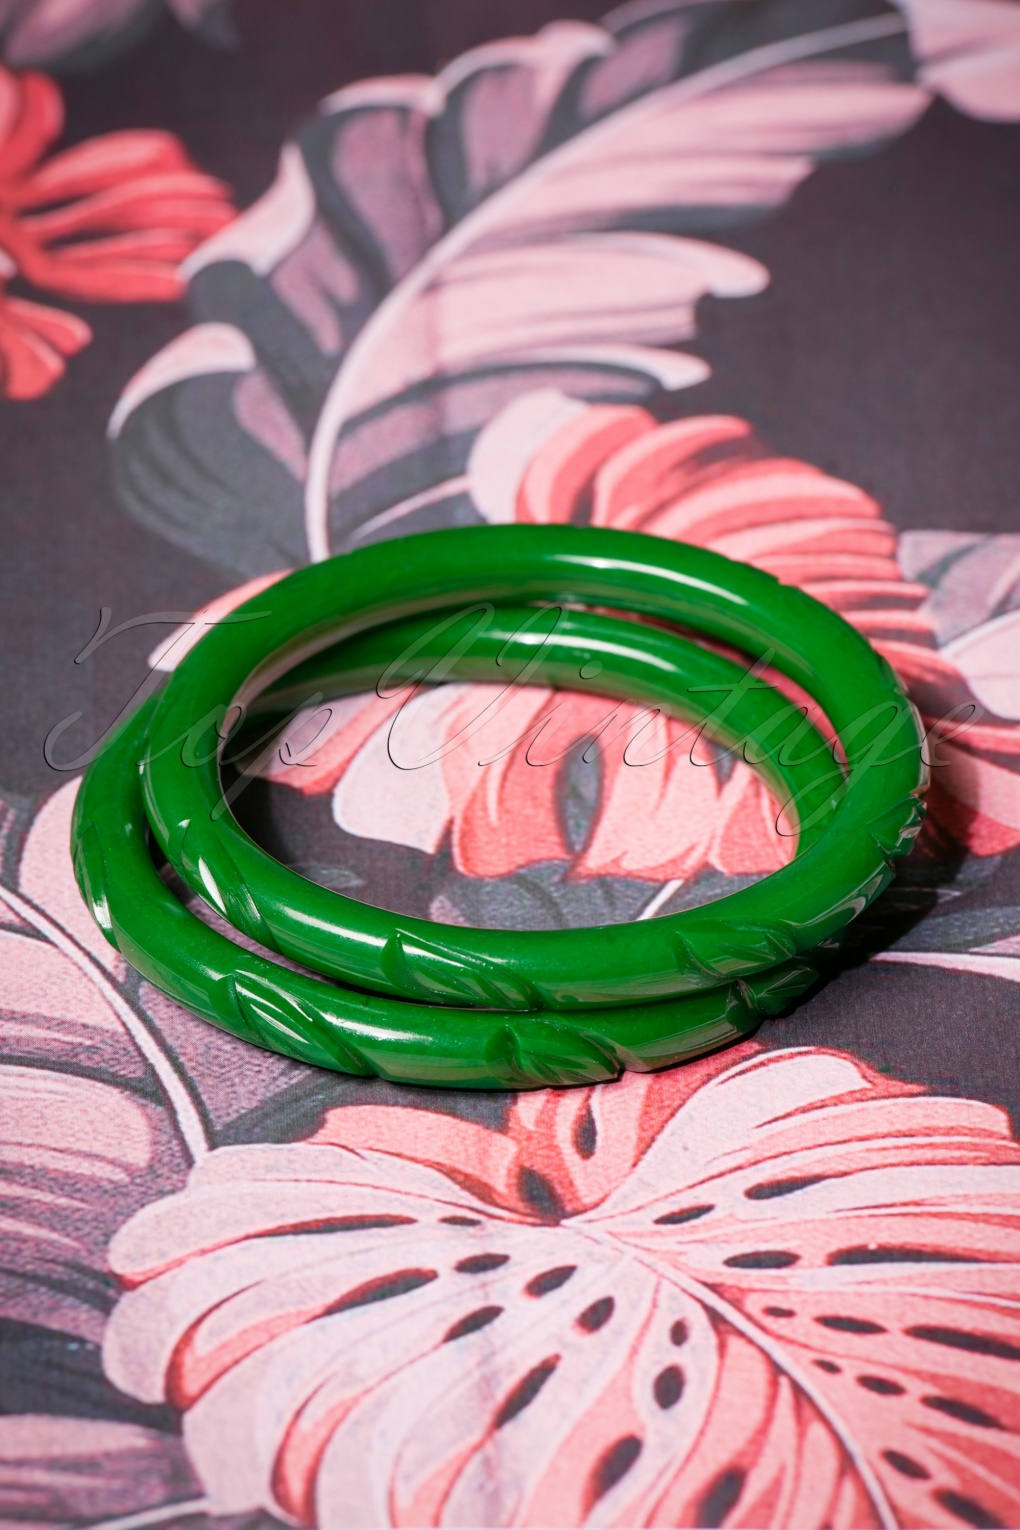 50s Jewelry: Earrings, Necklace, Brooch, Bracelet TopVintage Exclusive  40s Narrow Forest Heavy Carve Bangles Set in Green £11.38 AT vintagedancer.com